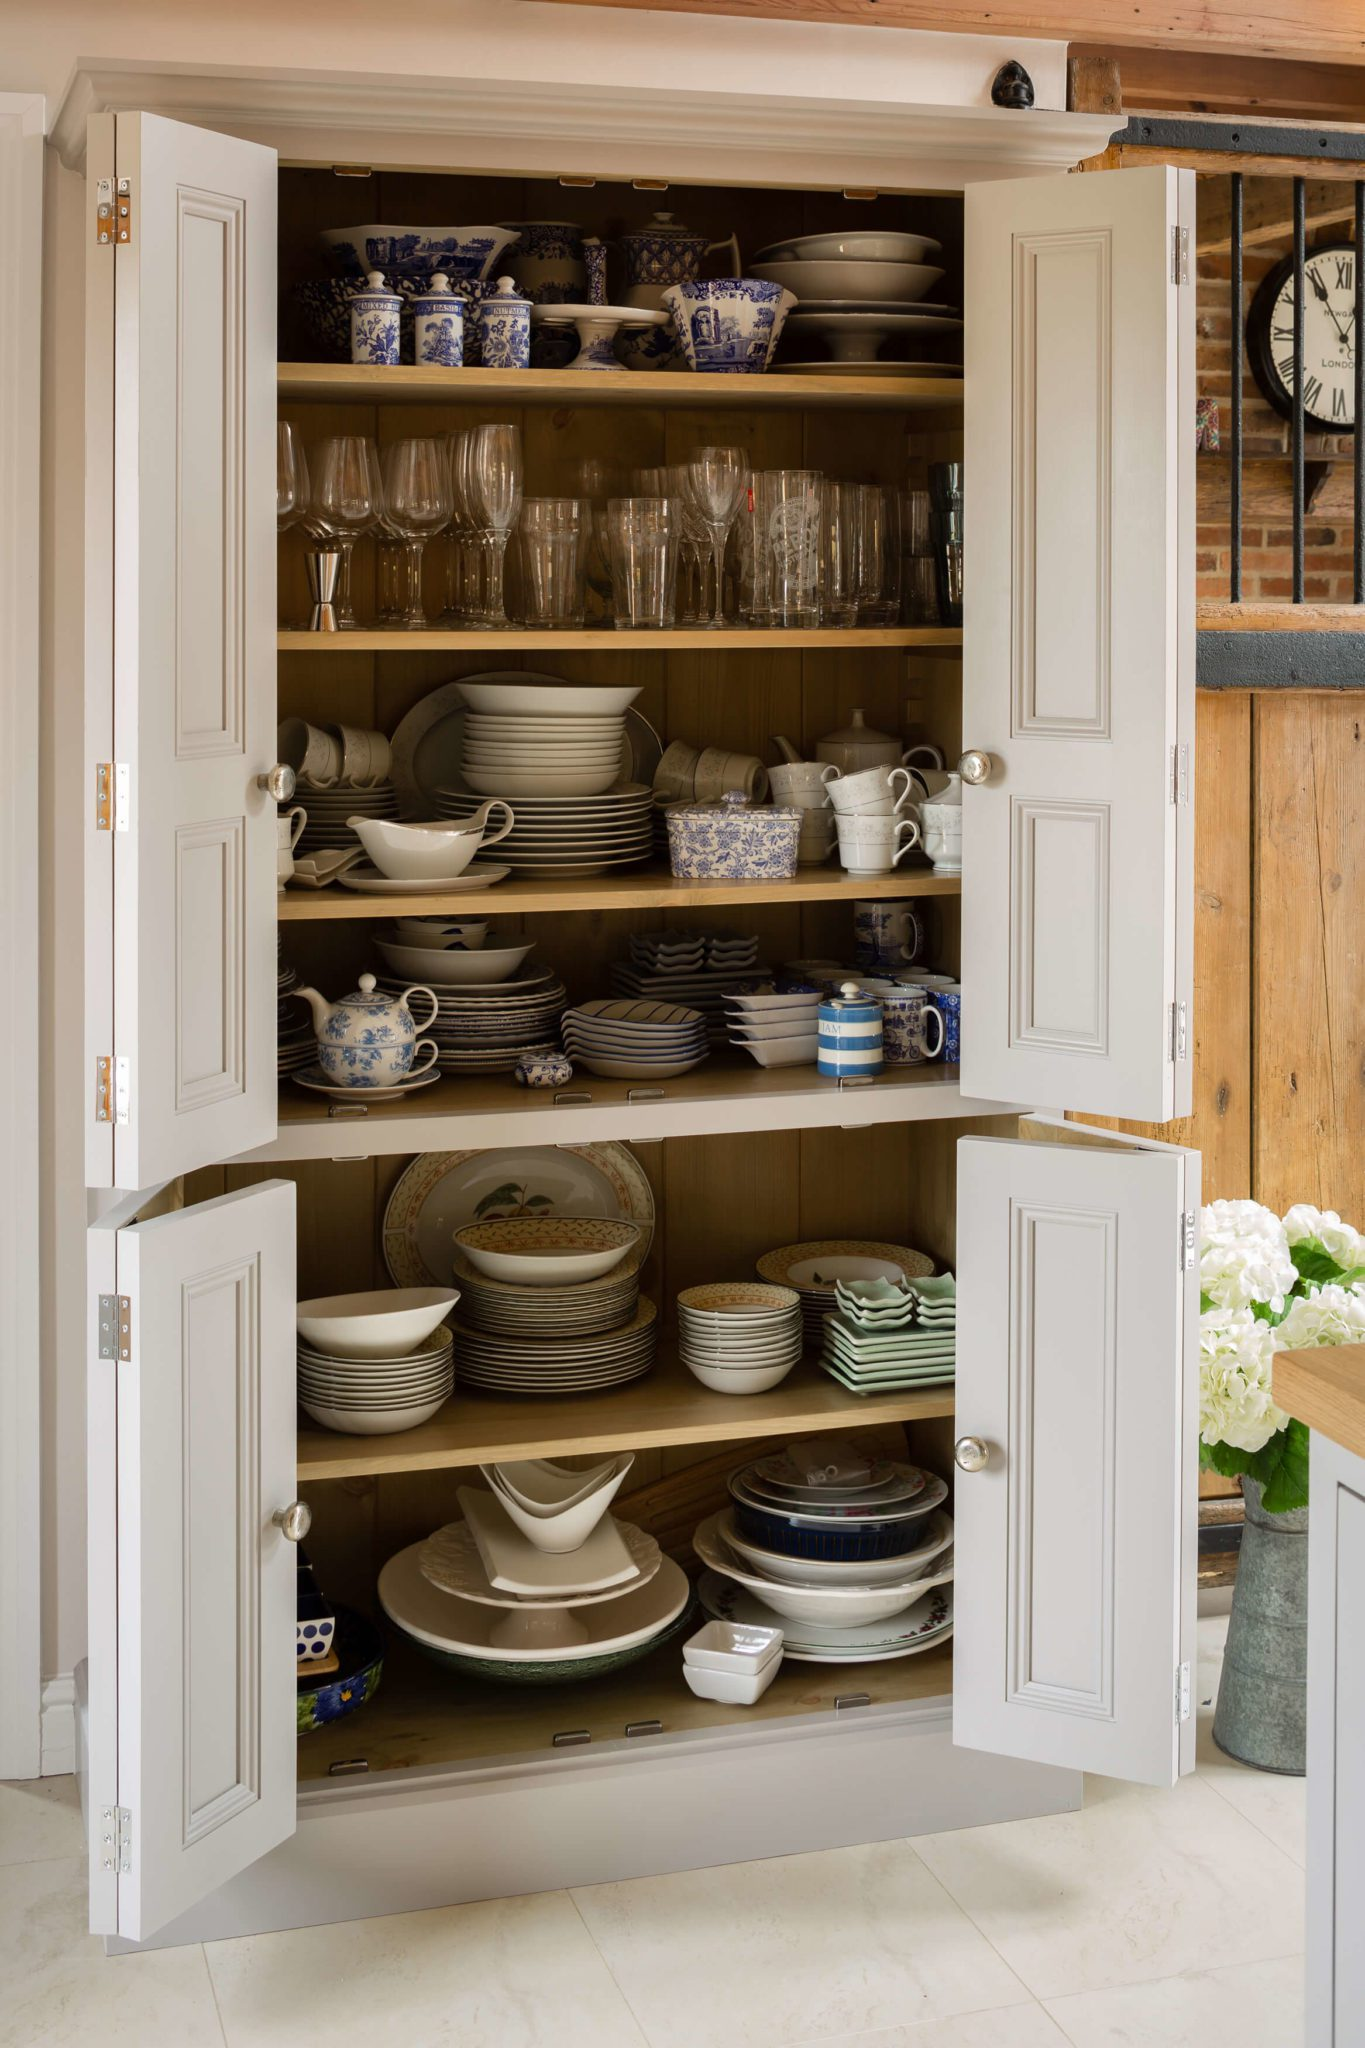 Bespoke Larder Kitchen 2 - Hill Farm Furniture